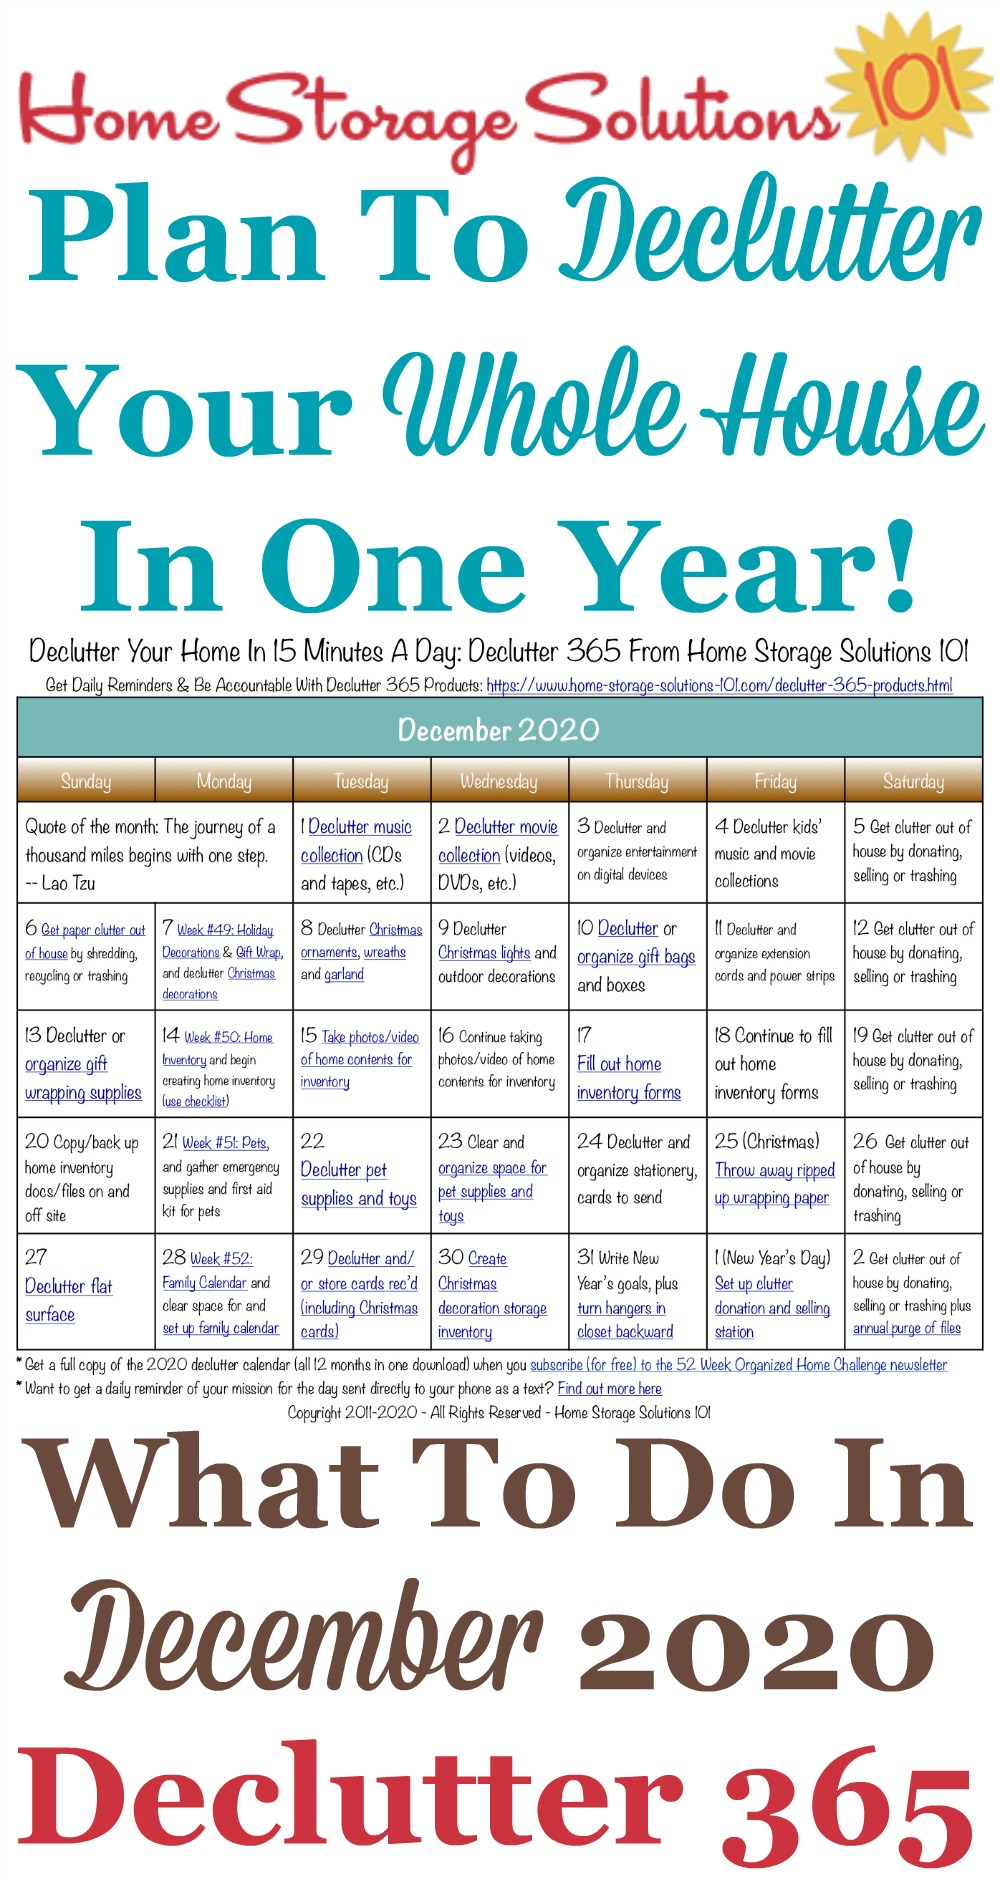 Free printable December 2020 #decluttering calendar with daily 15 minute missions. Follow the entire #Declutter365 plan provided by Home Storage Solutions 101 to #declutter your whole house in a year.